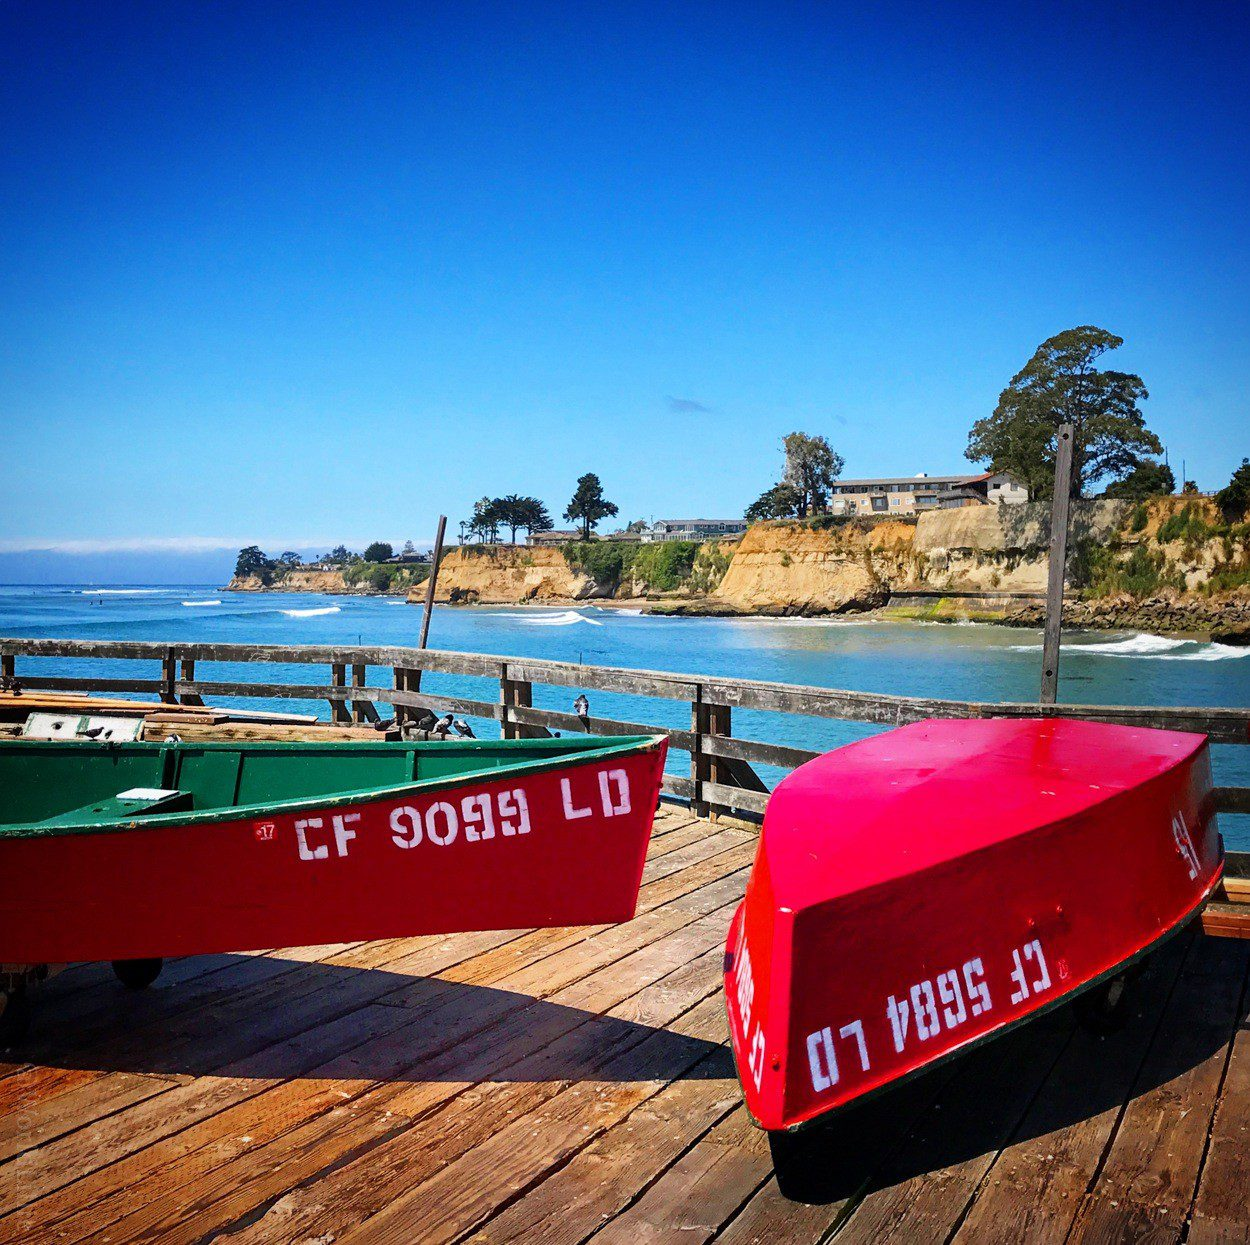 On a family trip to Santa Cruz, California this summer.